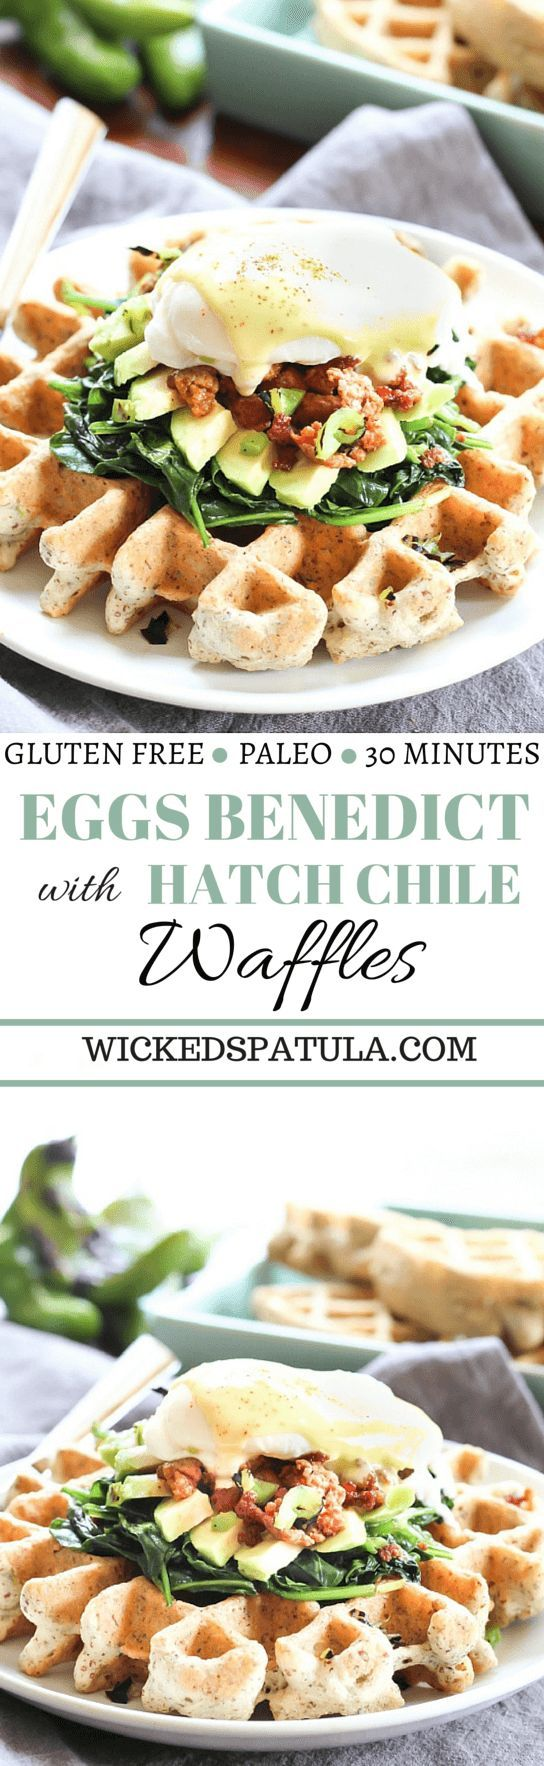 497 best Celebrate Hatch Chiles! images on Pinterest | Hatch chili ...